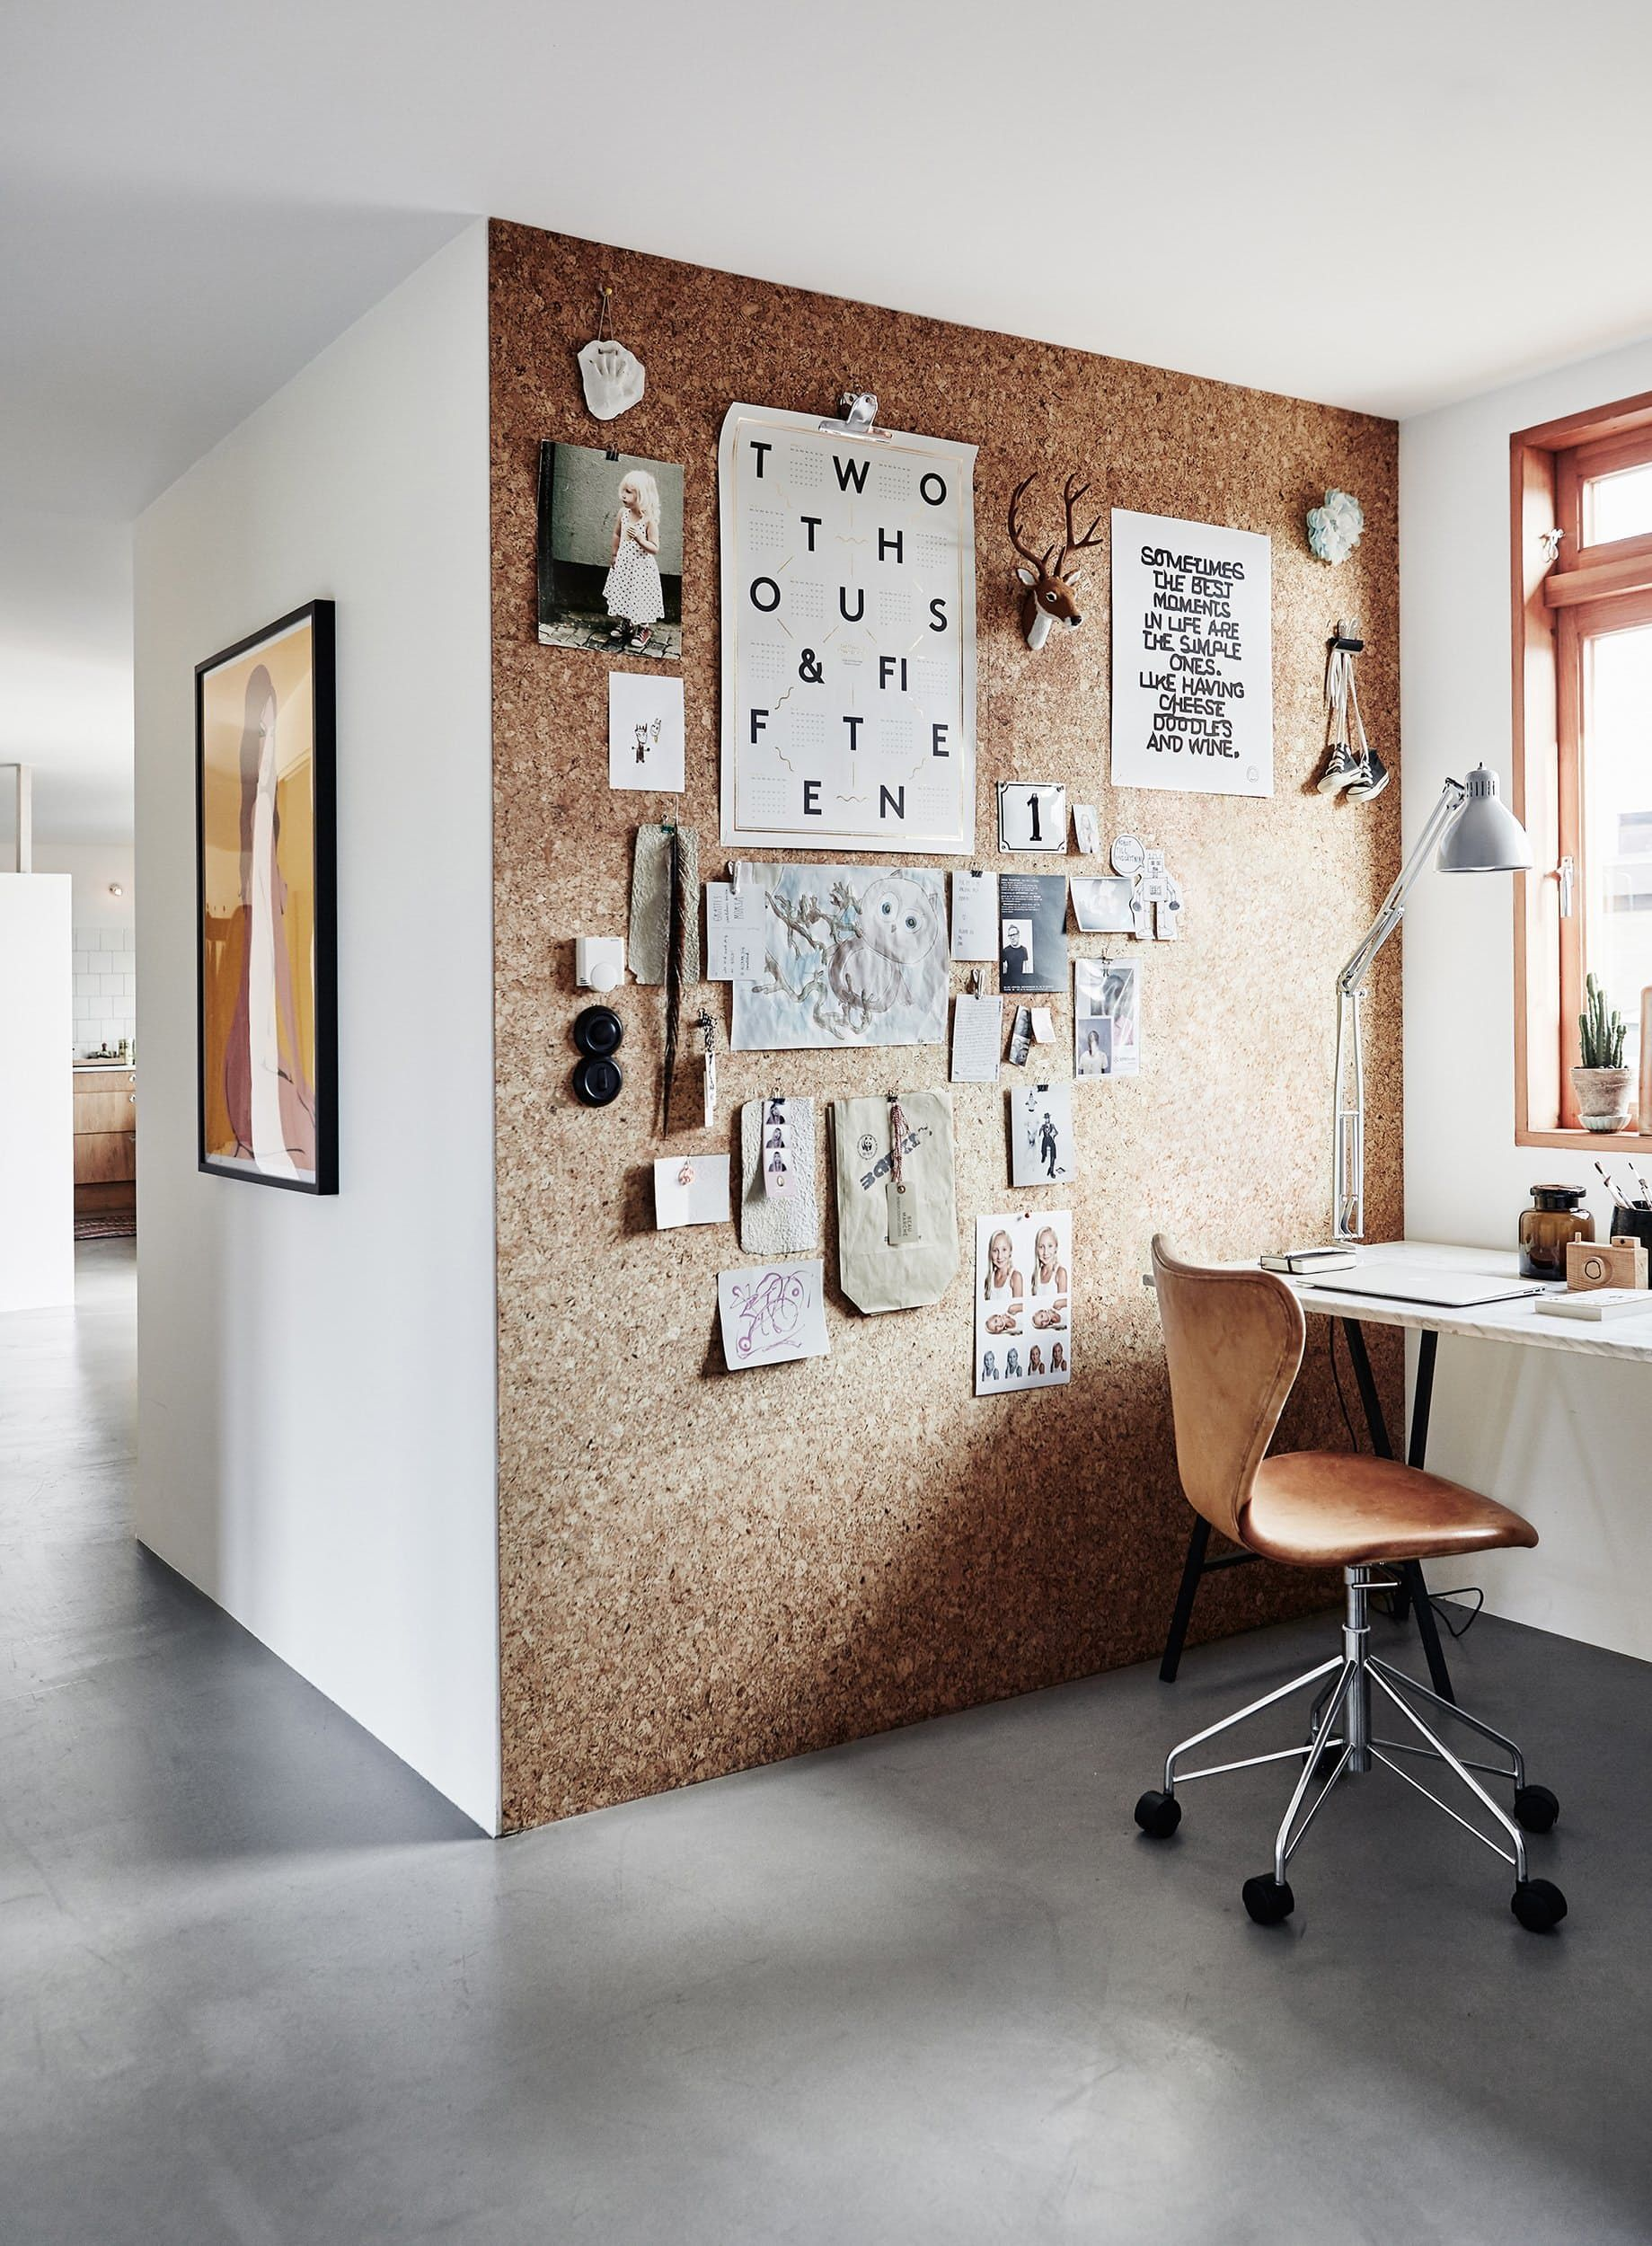 30 Photo Wall Ideas To Transform Your Room